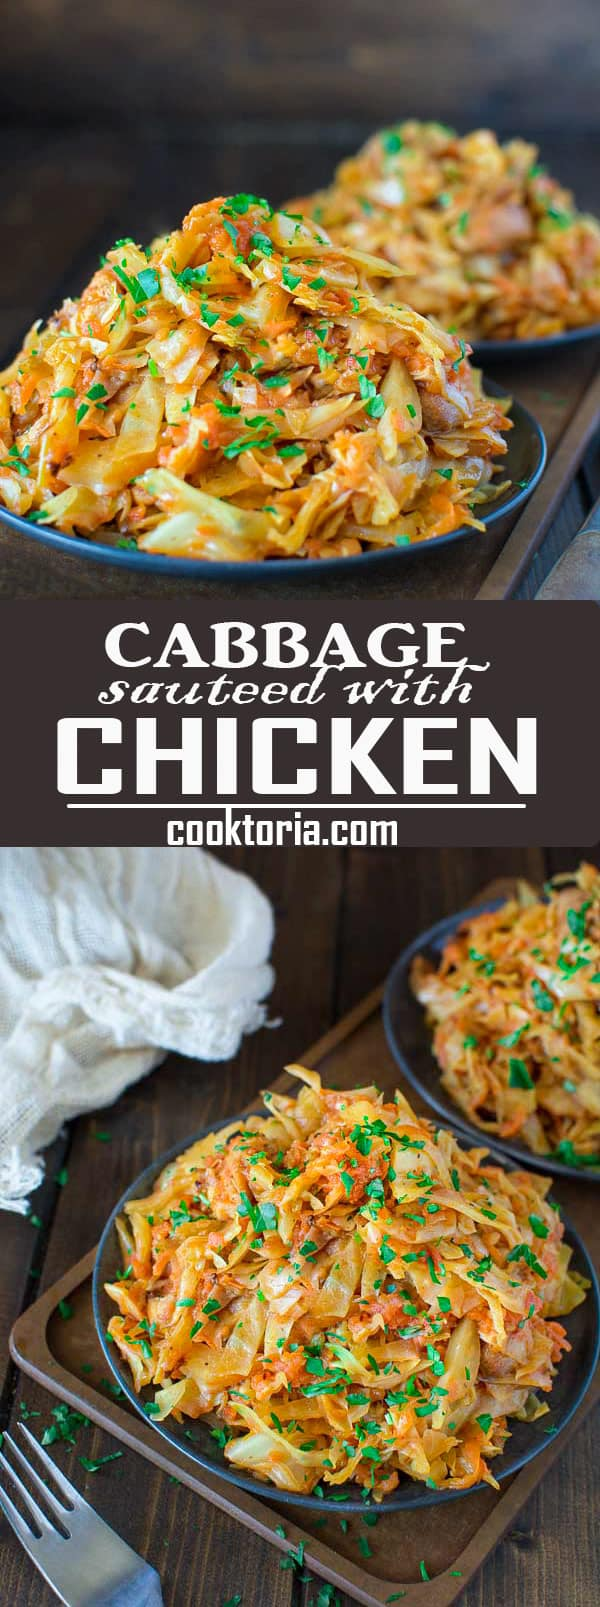 Succulent cabbage sauteed with tender chicken and vegetables. Just a few ingredients and about 15 minutes of active time make up this delicious dinner. This is my #1 Best Recipe yet! ❤ COOKTORIA.COM